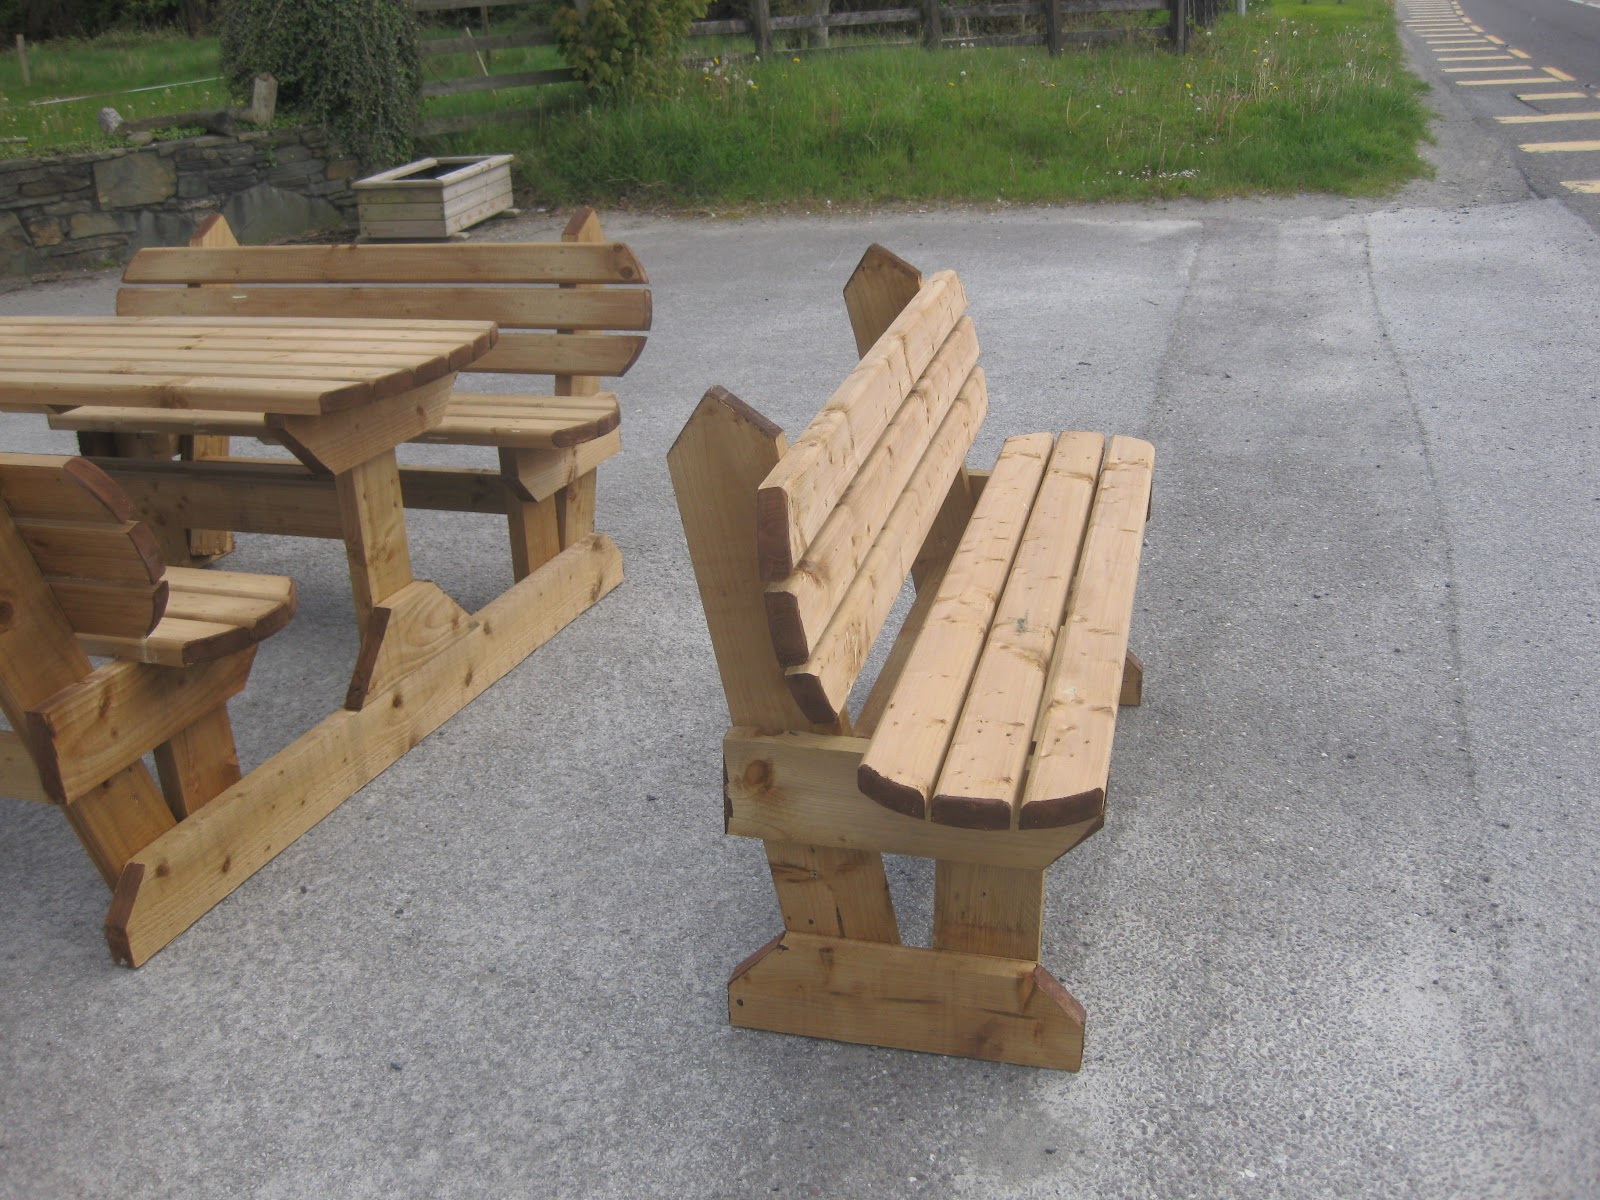 Garden Furniture Kerry timber garden furniture: timber garden furniture for sale in